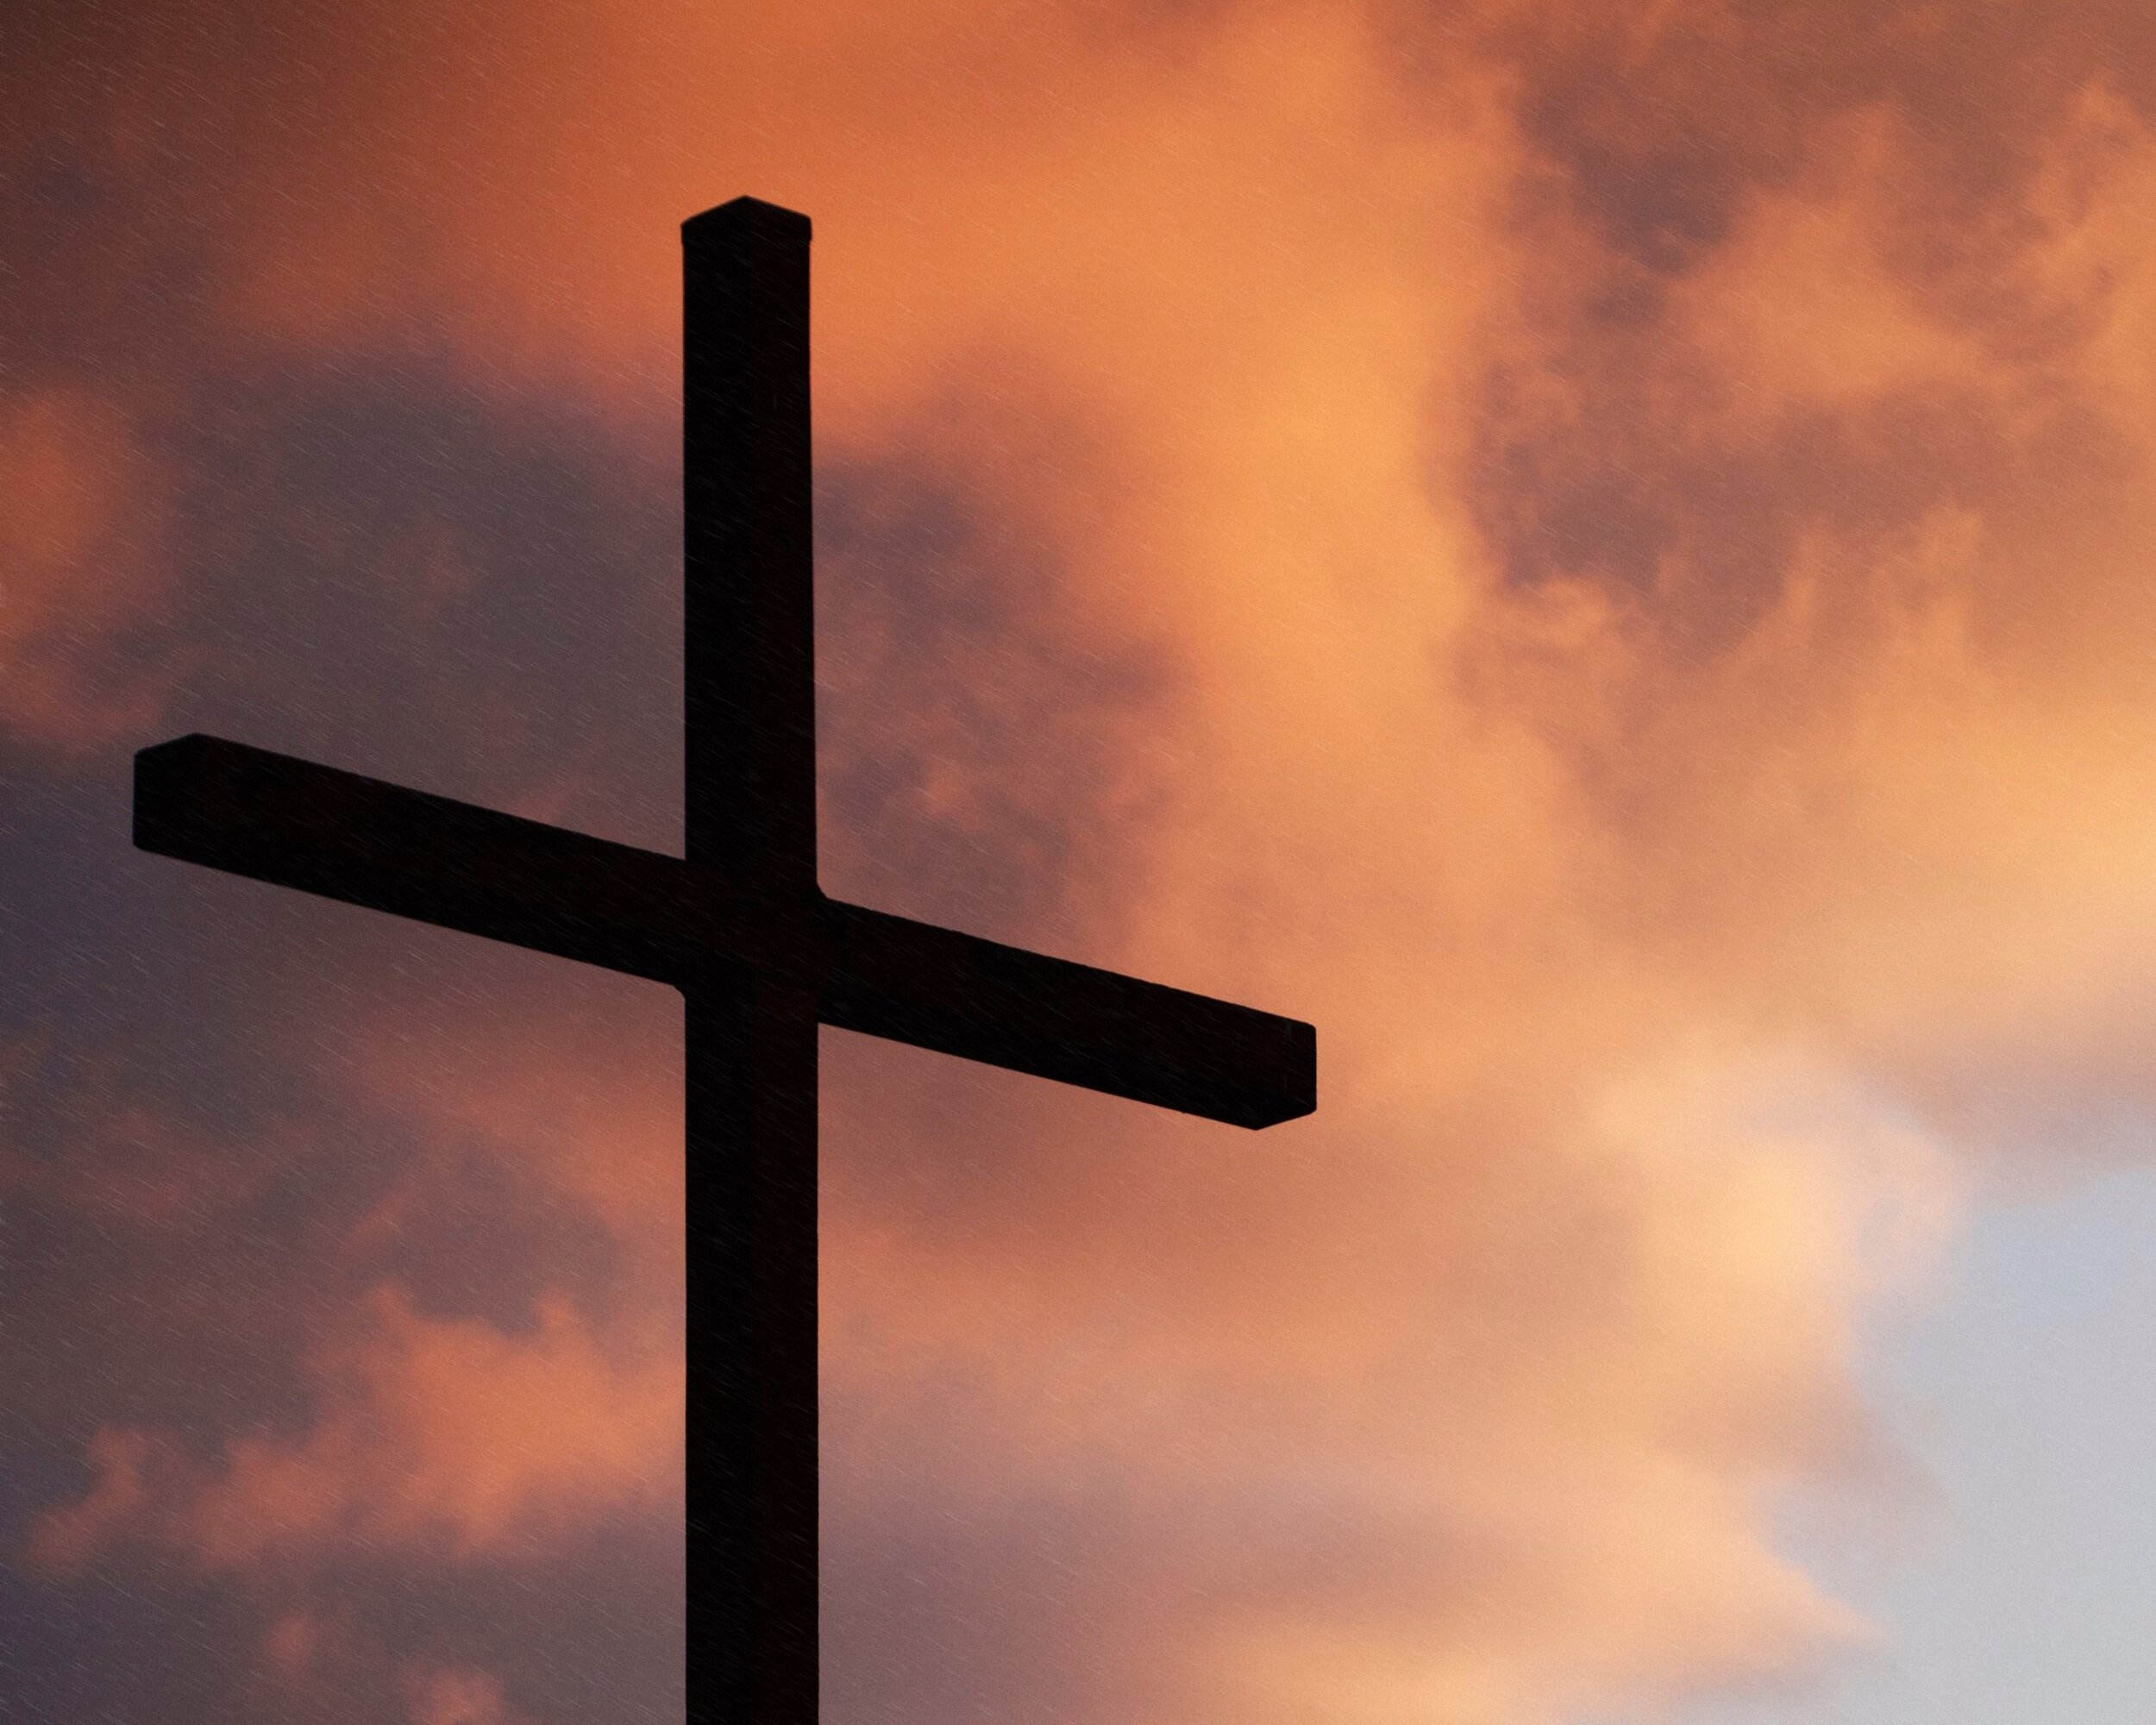 Sunset Worship - Sunday Worship and Prayer Service6:00pmHealing & Prayer Rooms are open after the service.